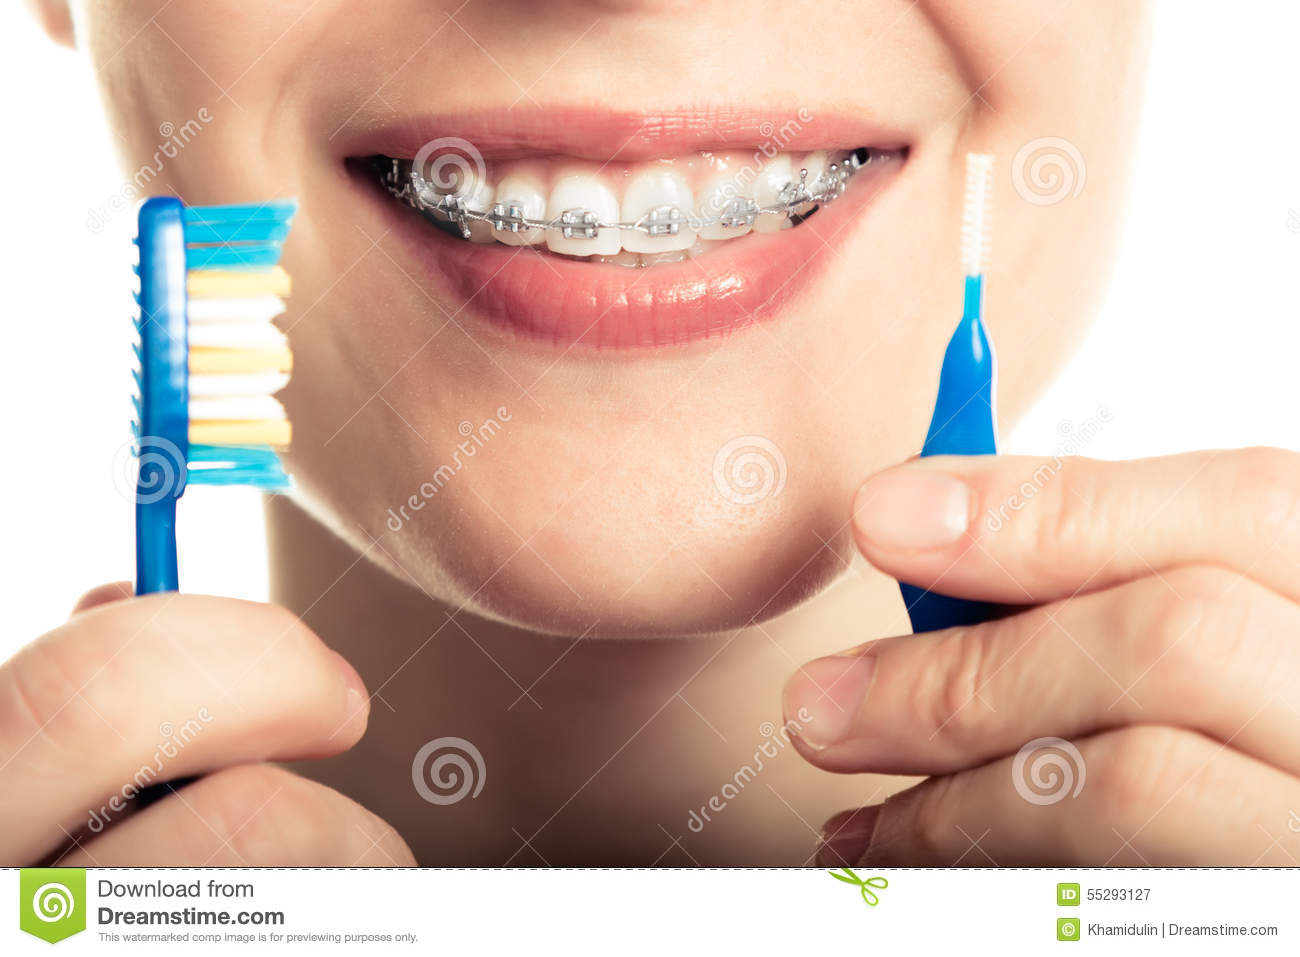 Beautiful smiling girl with retainer for teeth brushing teeth